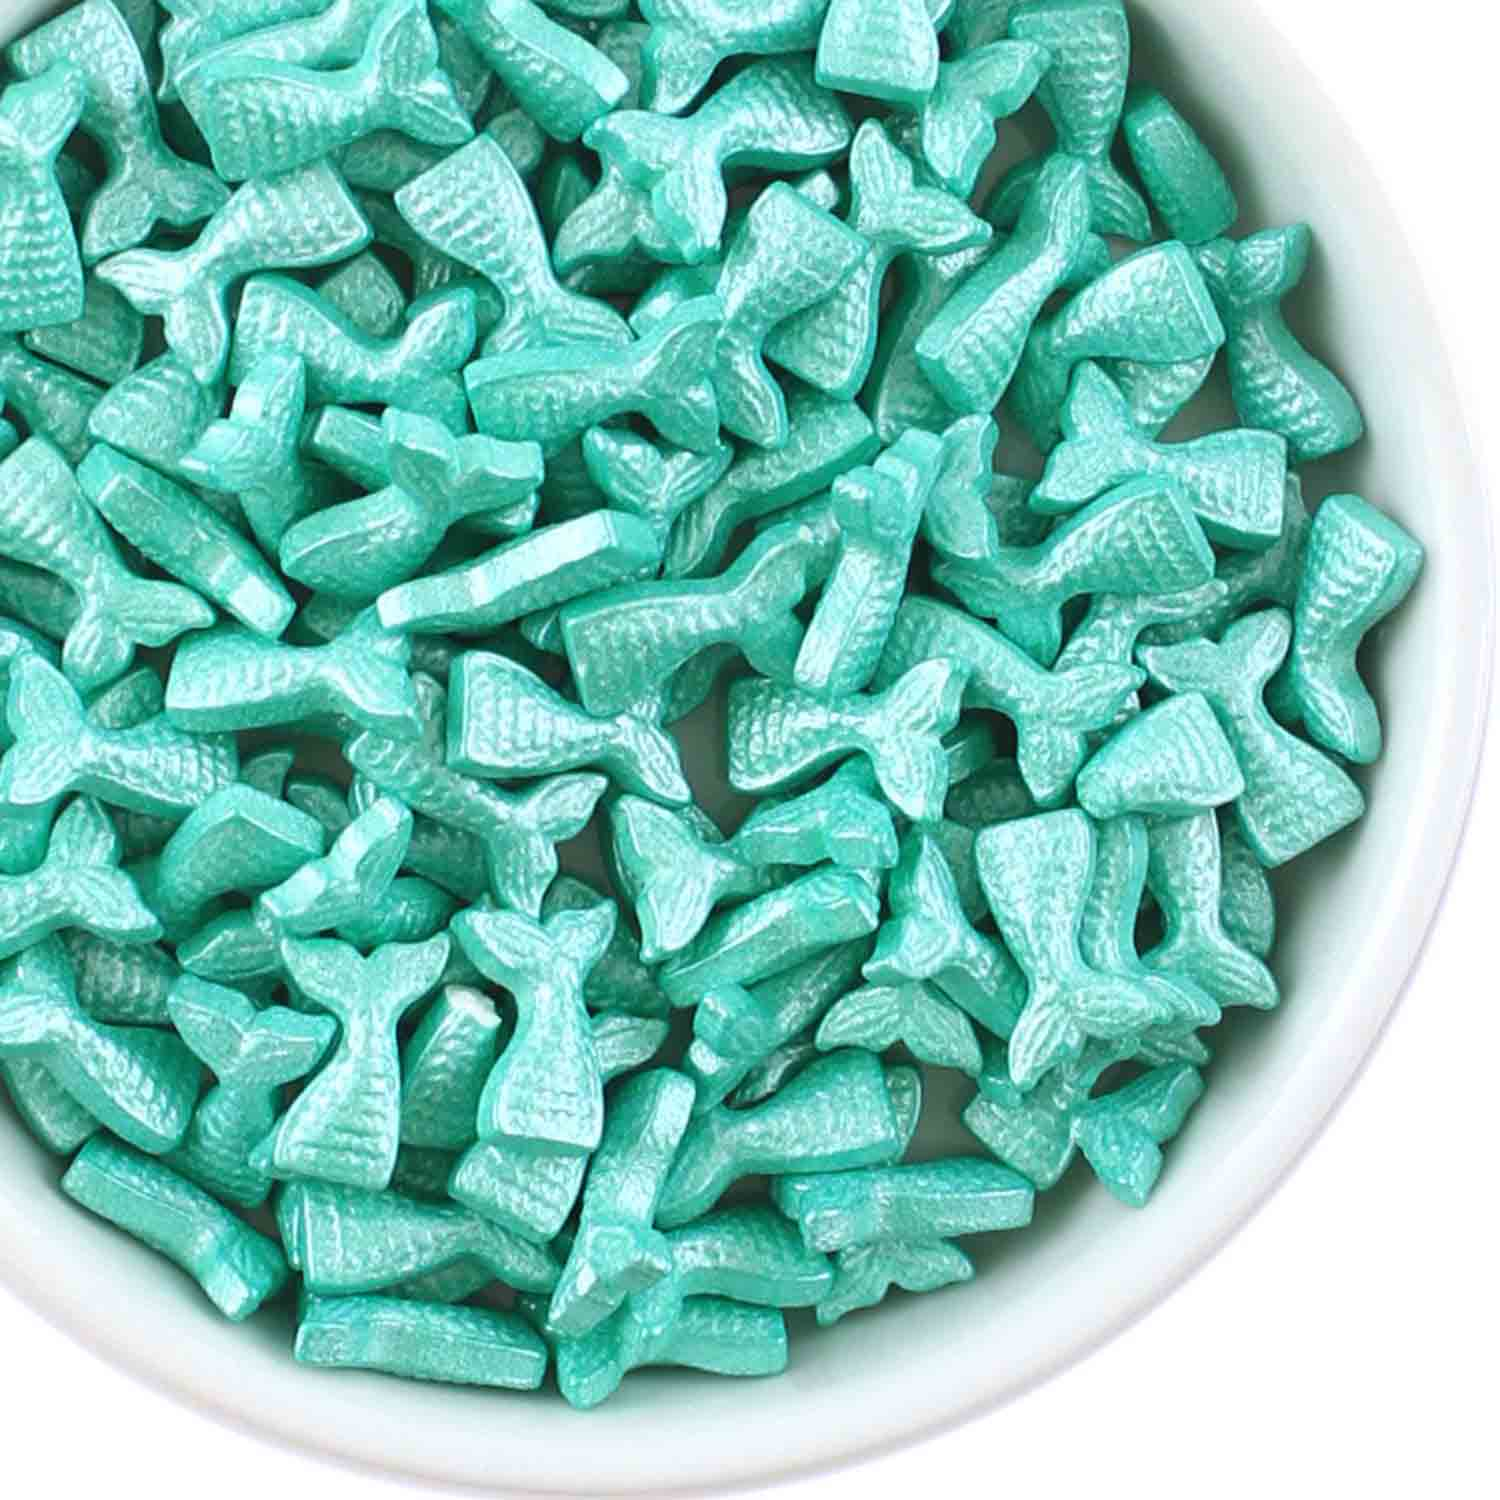 Teal Mermaid Tail Candy Sprinkles